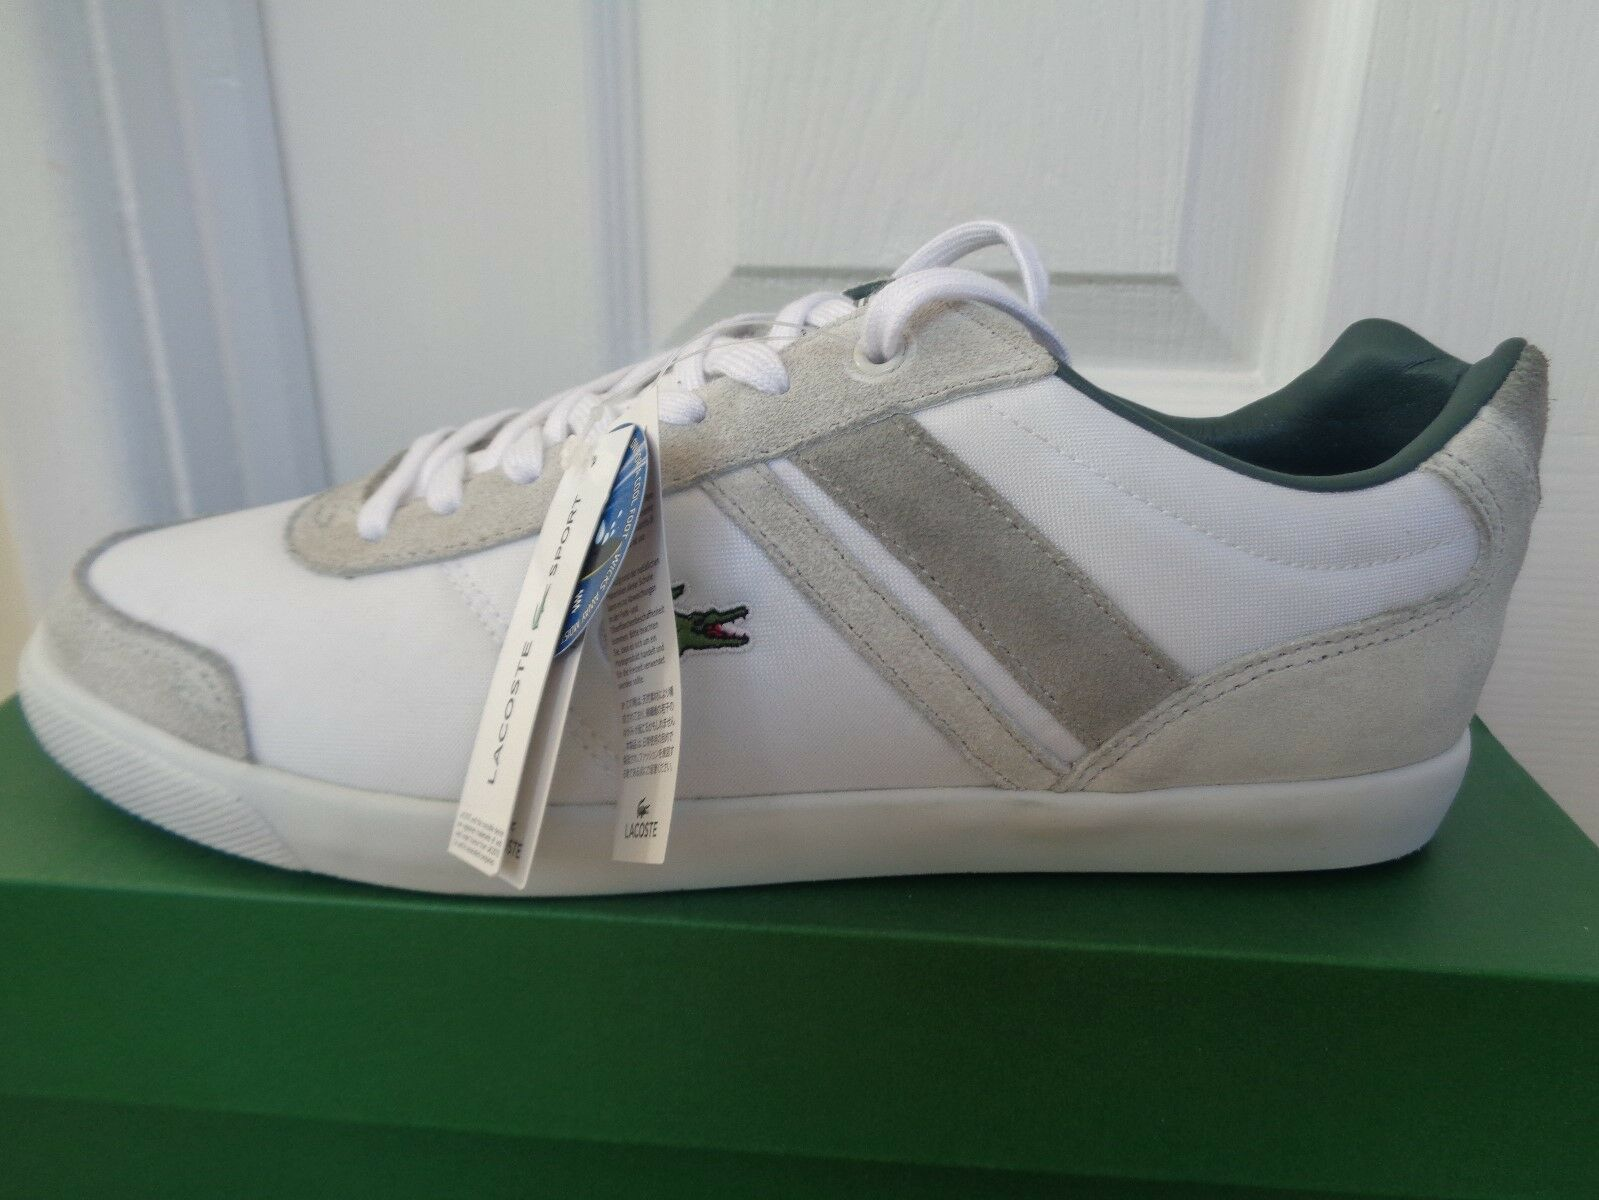 Lacoste Sport Comba PUT SPM mens white/beige shoes sneakers trainers NEW+BOX